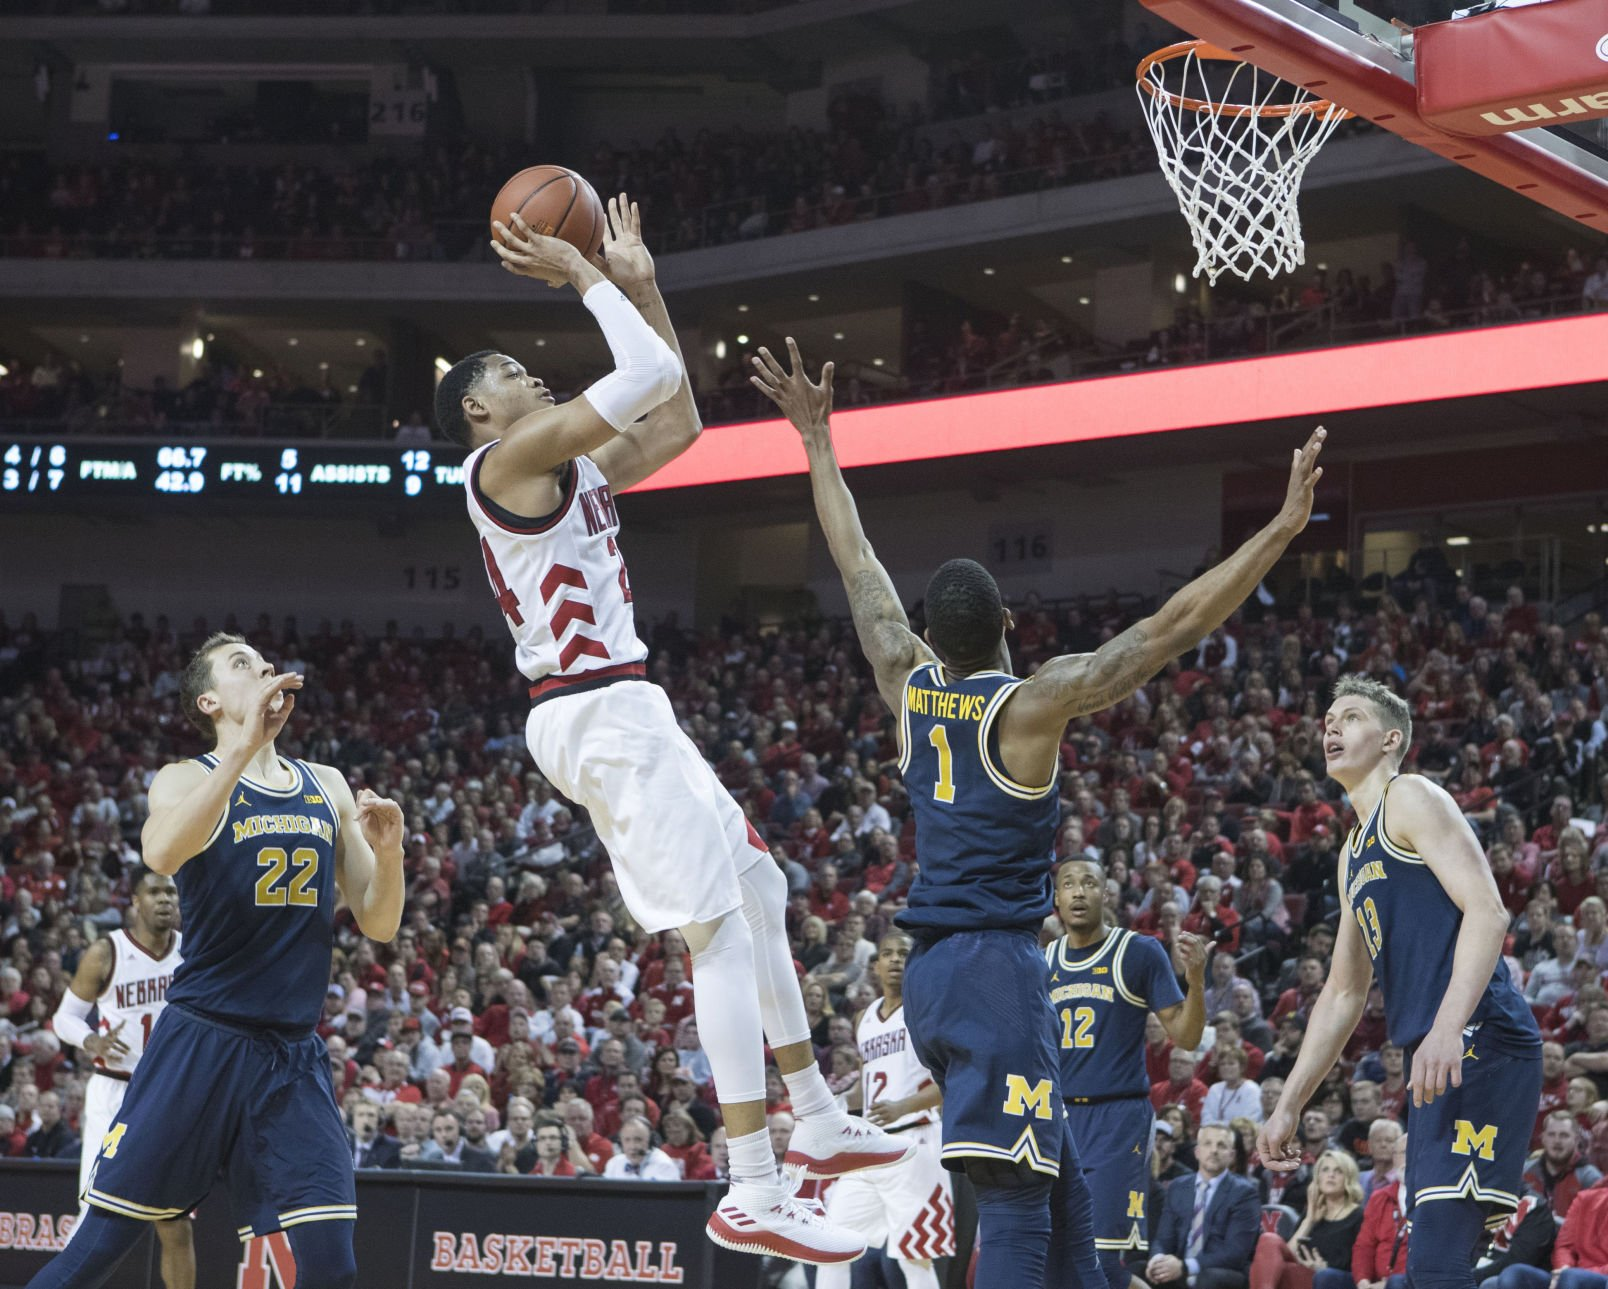 Tomu0027s Take Statement win against Michigan could